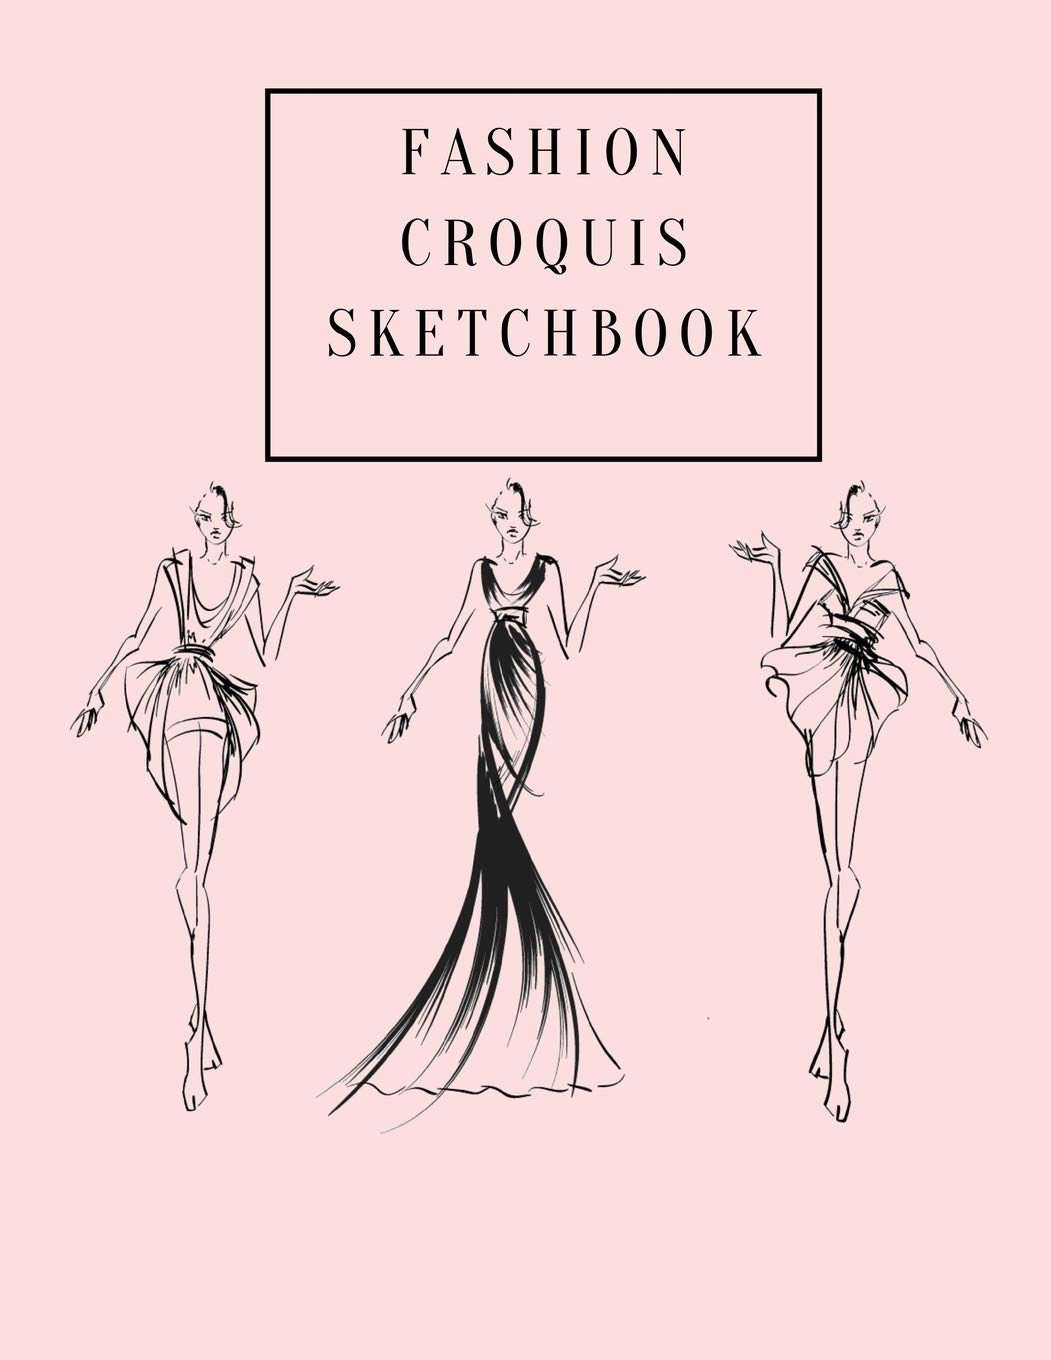 Fashion Croquis Sketchbook A Cute Simple Professional Pale Pink Theme Female Figure Body Illustration Templates Sketchpad With Lightly Drawn Images High Fashion Designs And Create Portfolio Femme La Belle 9781070935850 Amazon Com